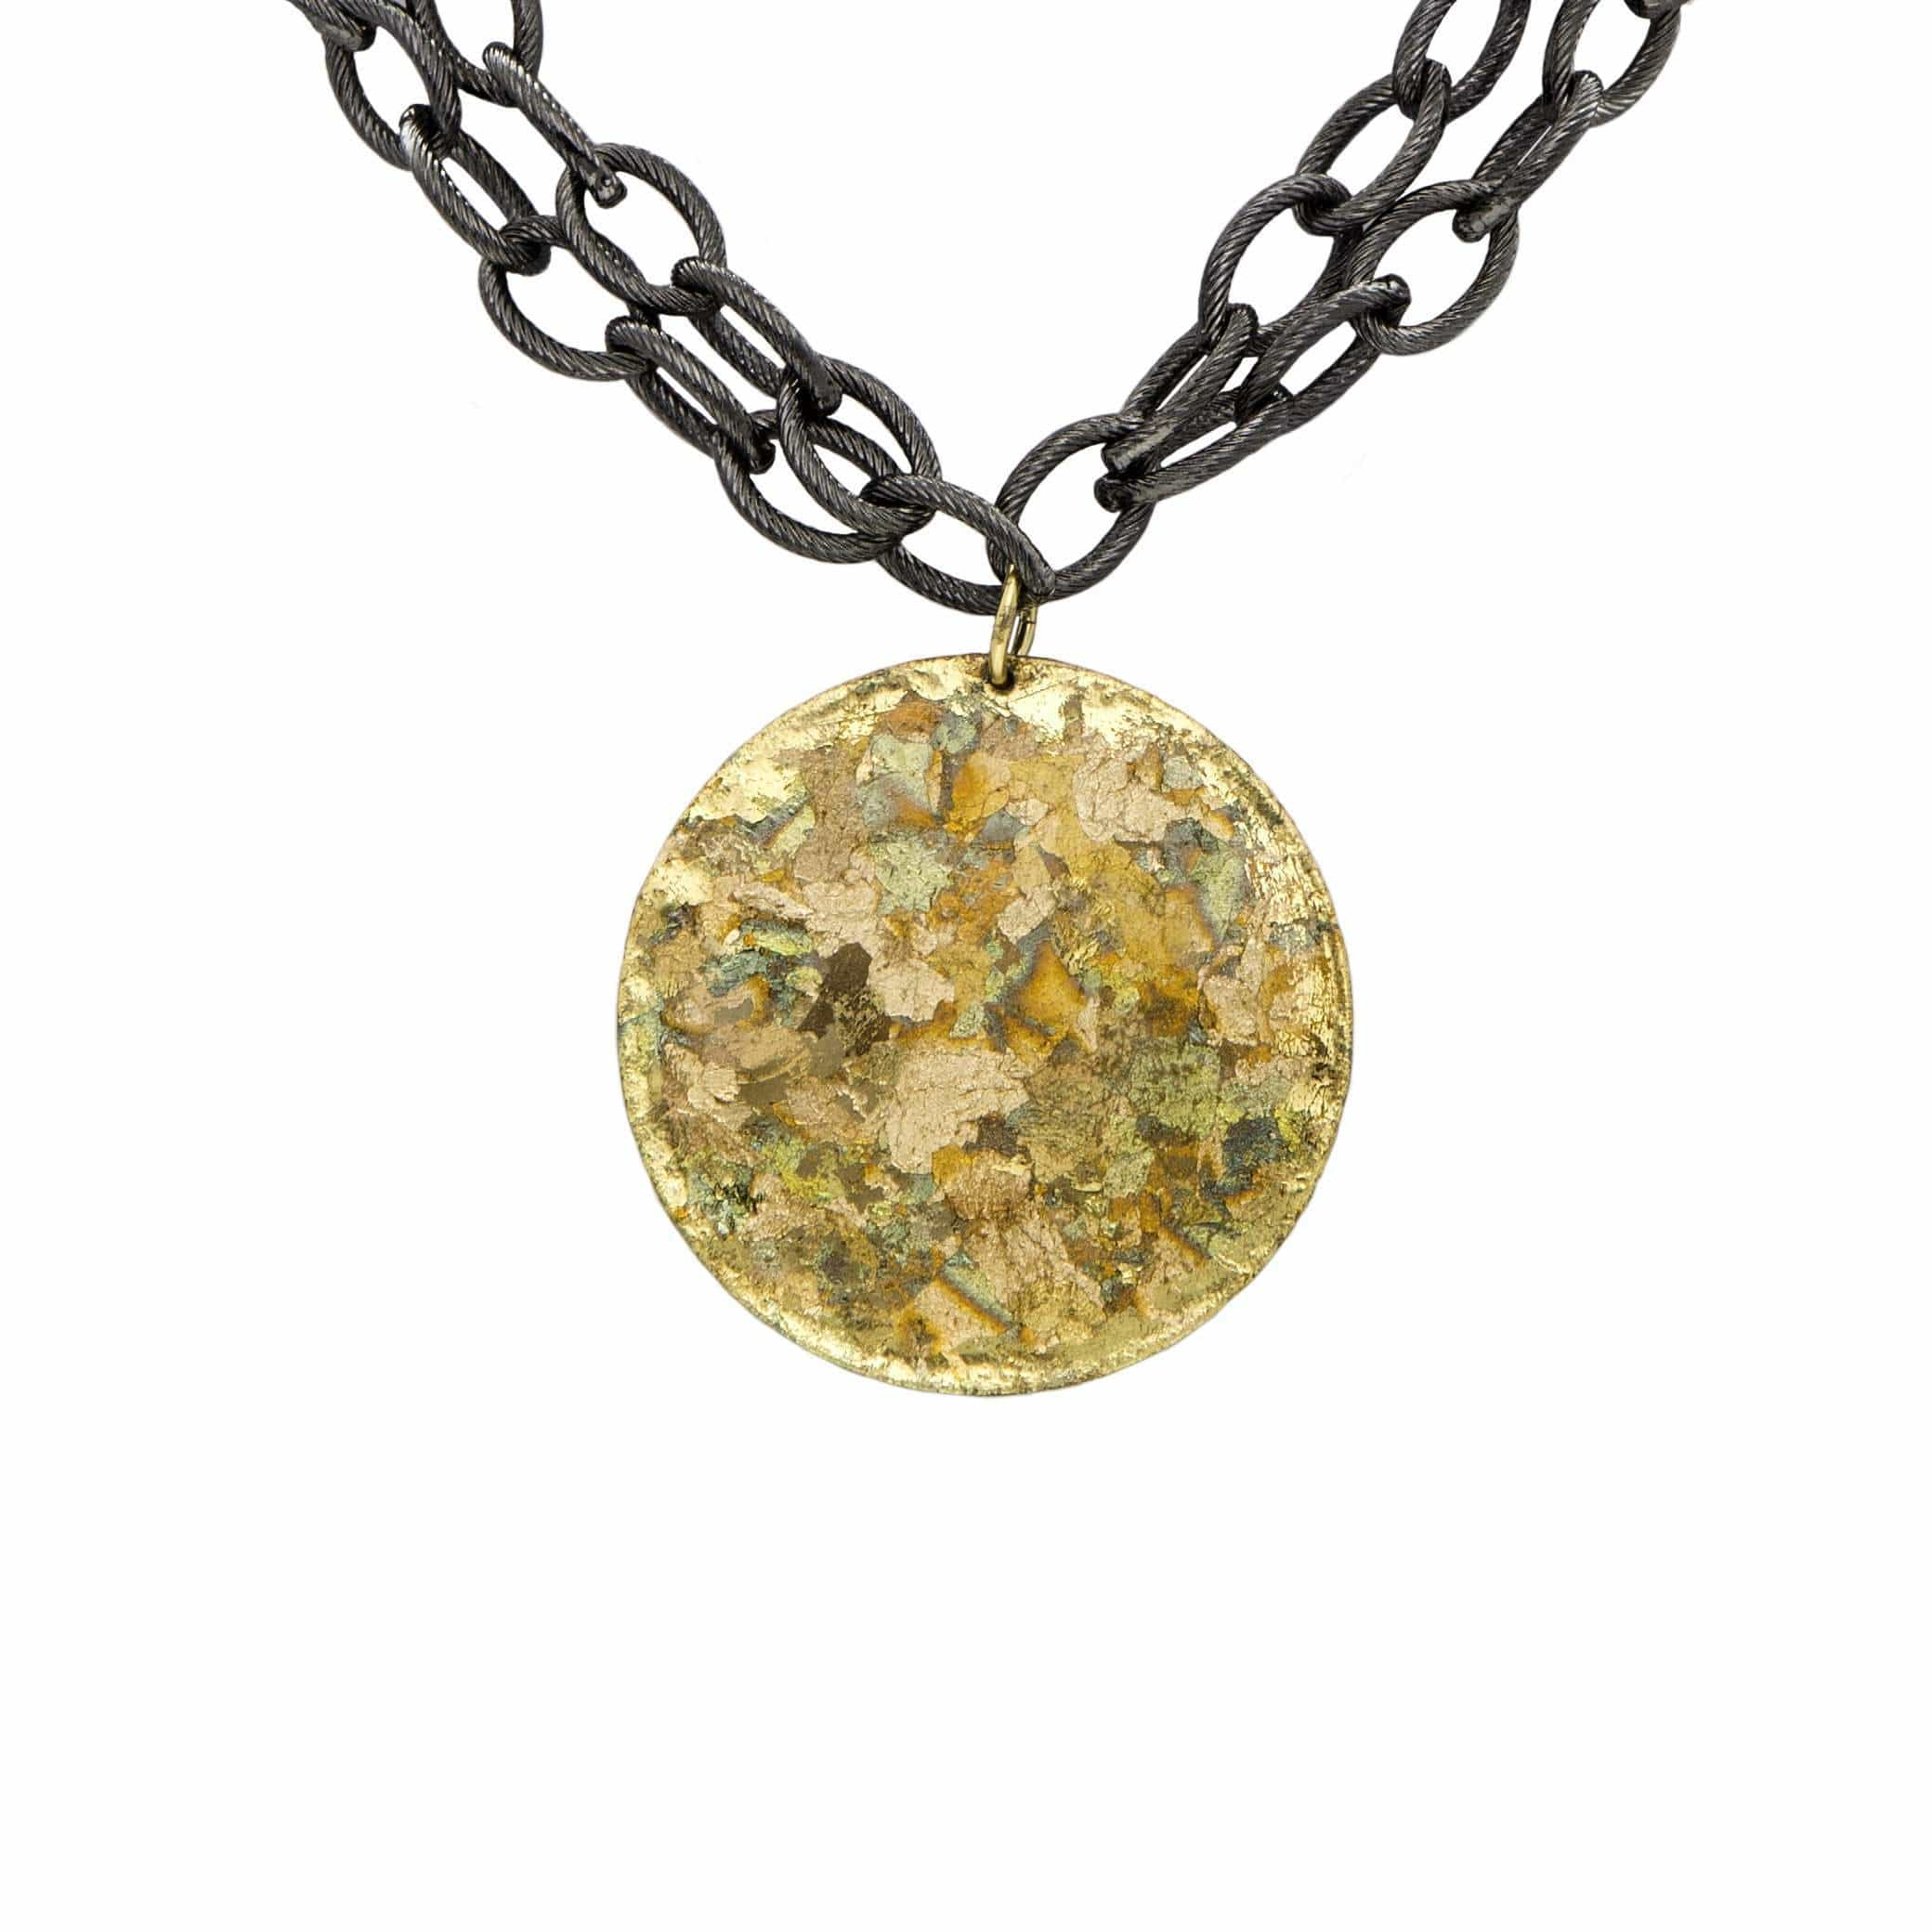 Confetti Disc Pendant with Gunmetal Chain - VO257-Evocateur-Renee Taylor Gallery